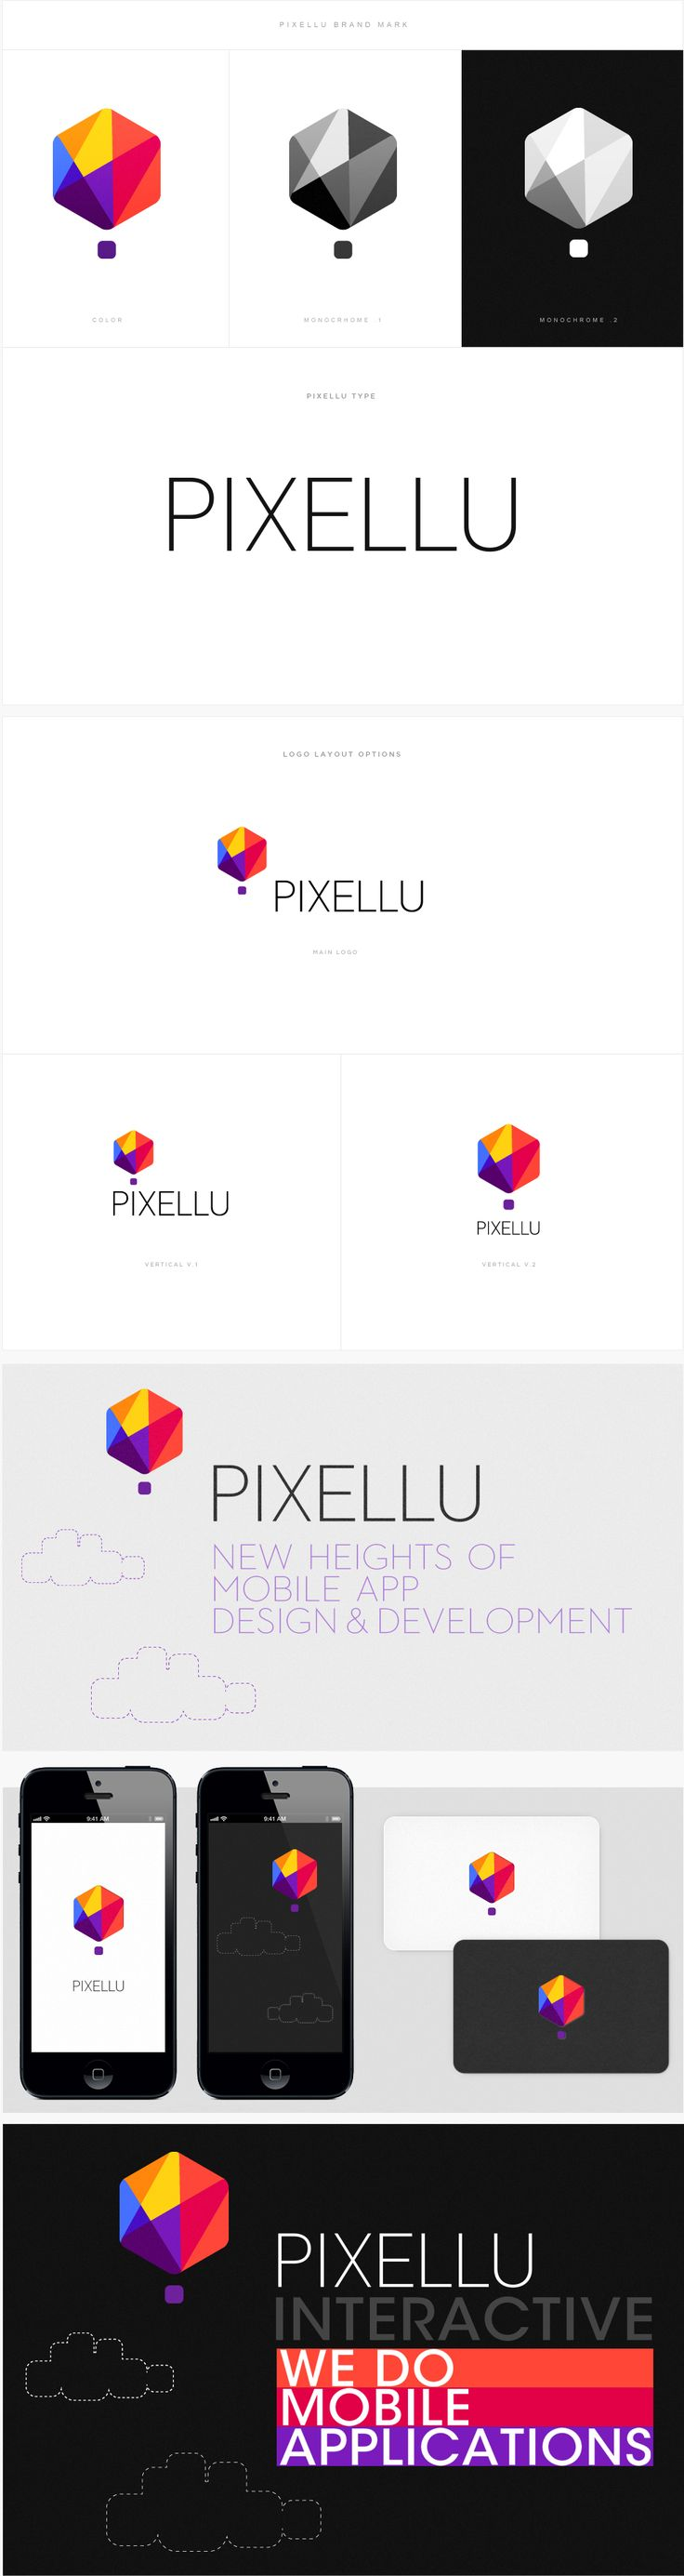 Pixellu | #corporate #branding #creative #logo #personalized #identity #design #corporatedesign < repinned by www.BlickeDeeler.de | Have a look on www.LogoGestaltung-Hamburg.de